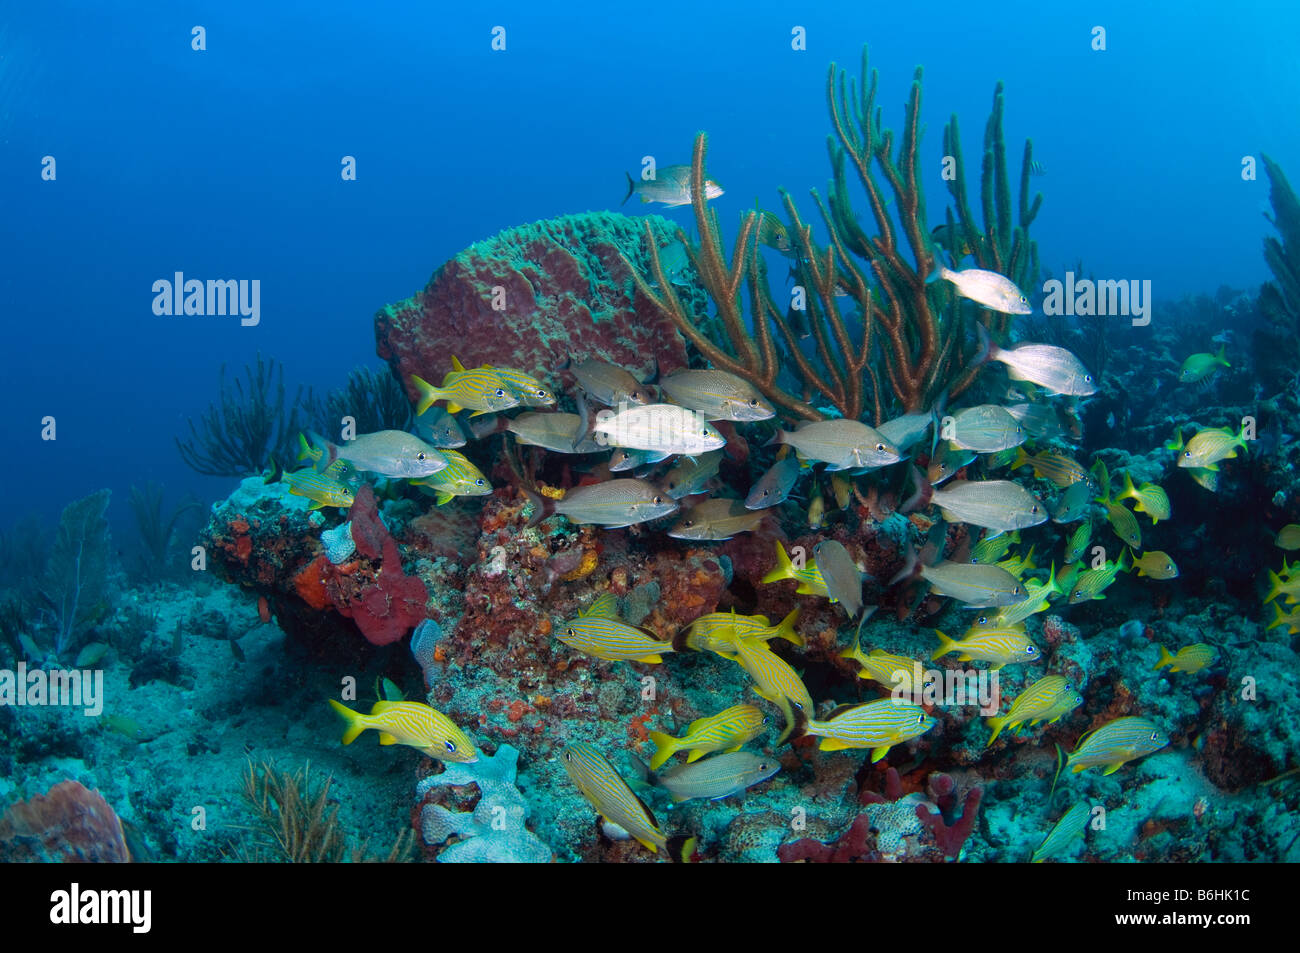 Coral Reef in South Palm Beach FL This reef is threatened by sewage dumping and beach renourishment projects - Stock Image